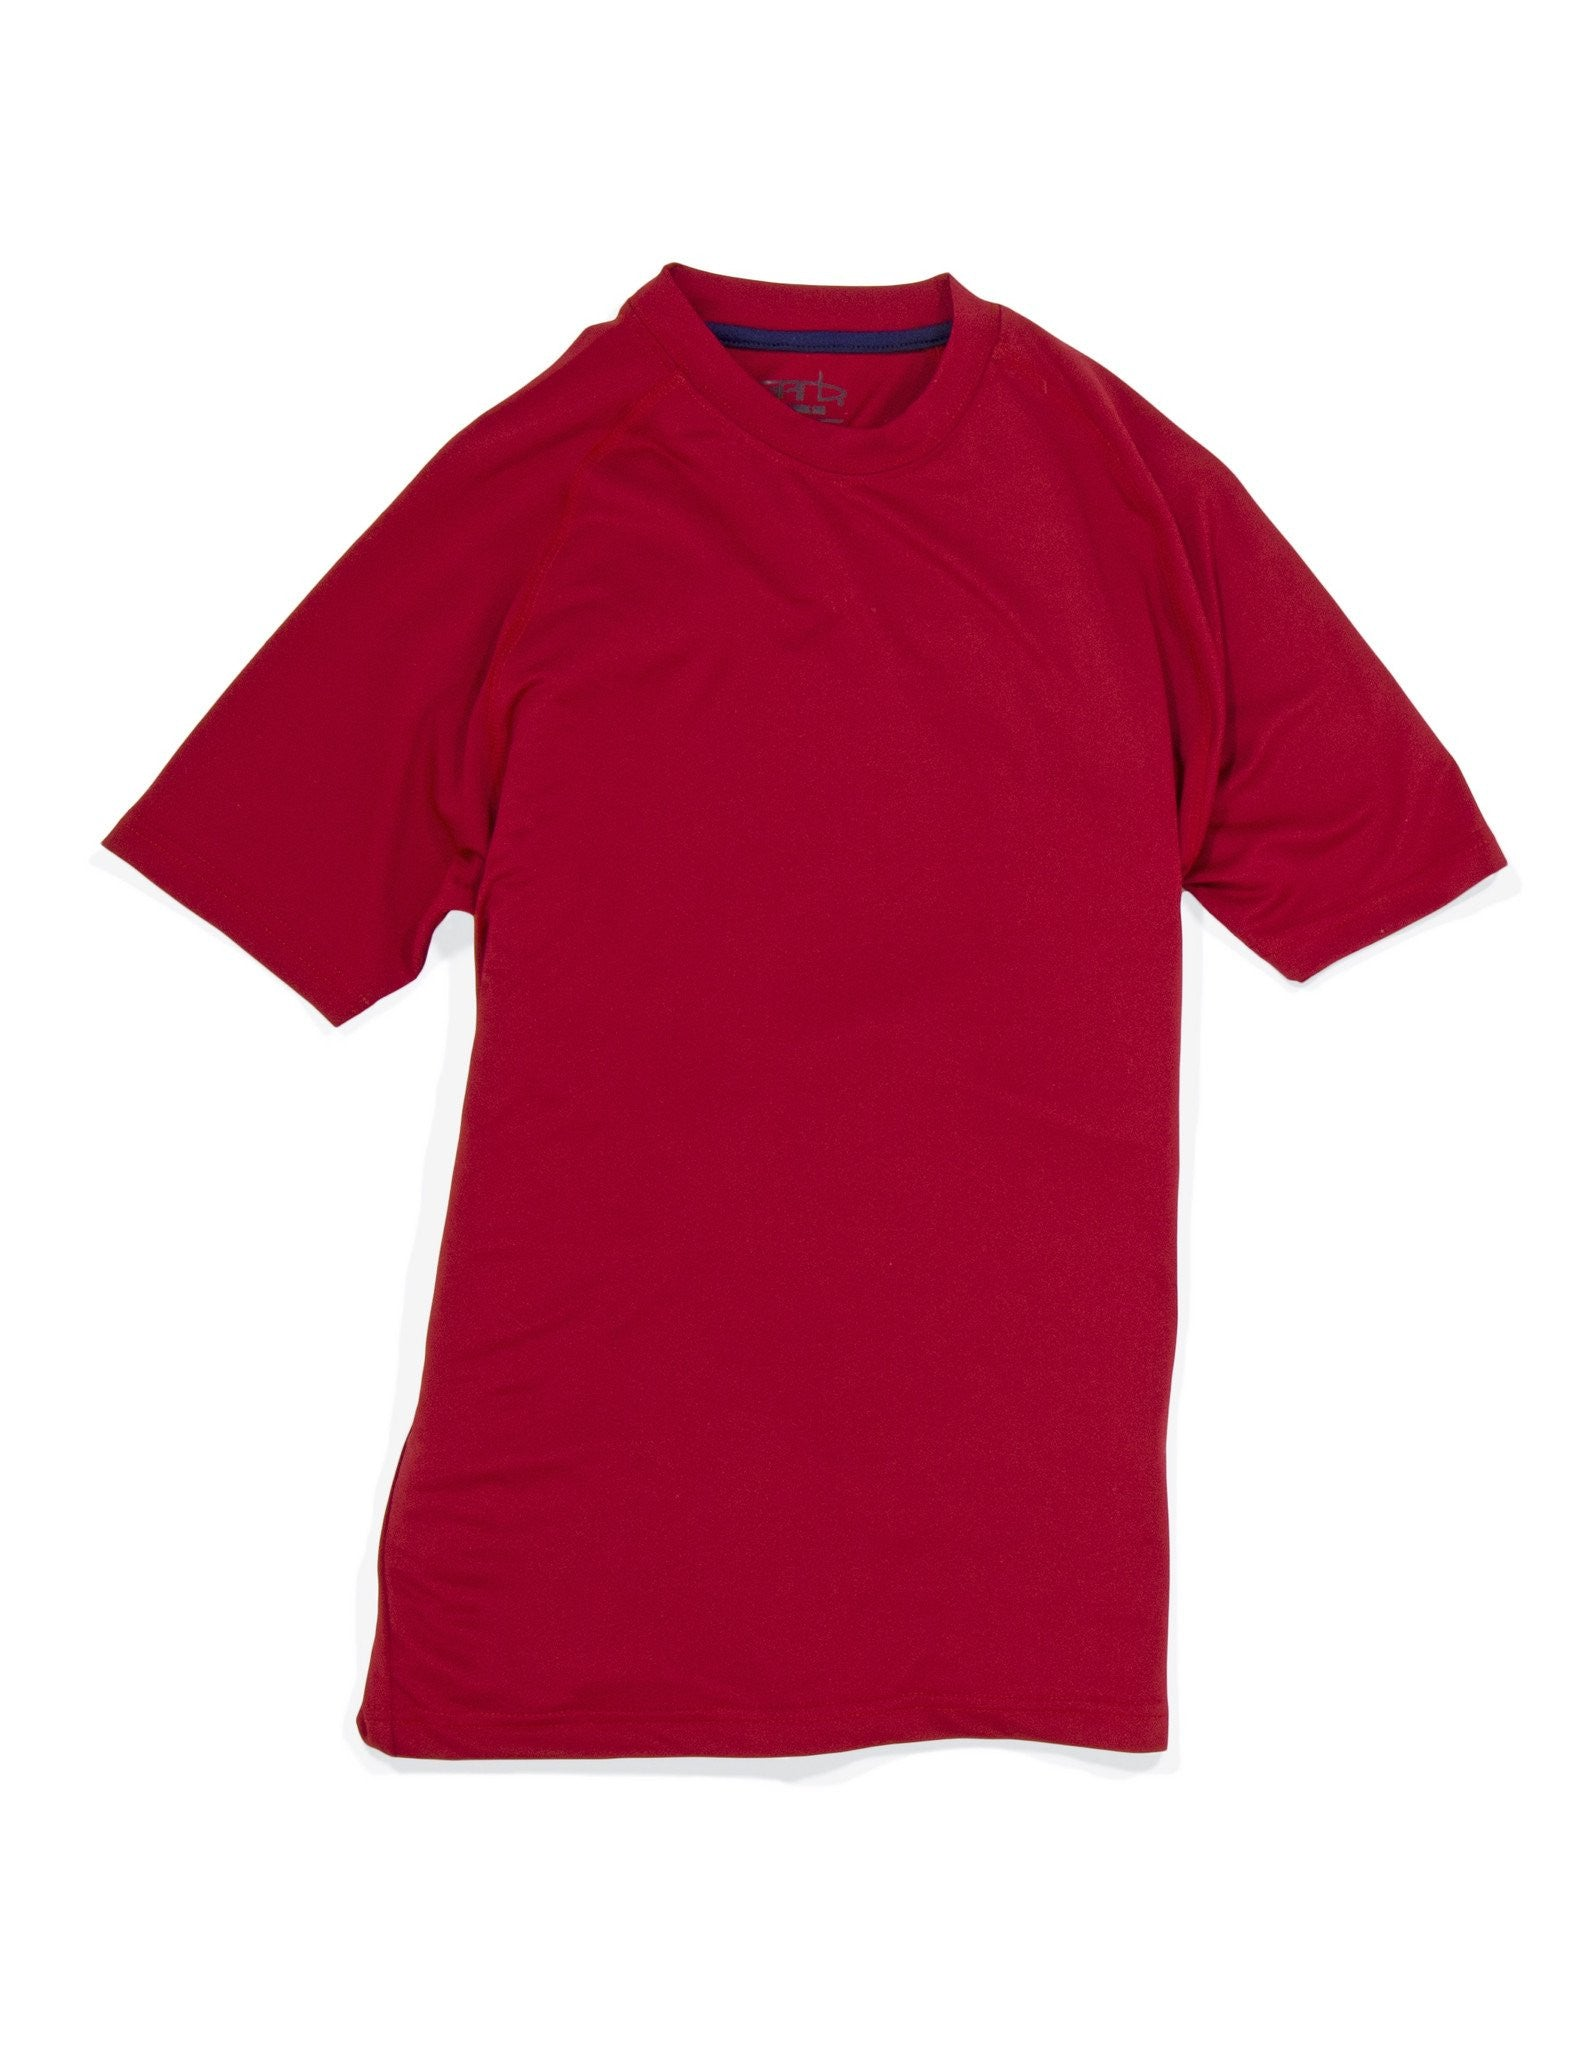 Garb boy's golf crew tee in tomato red